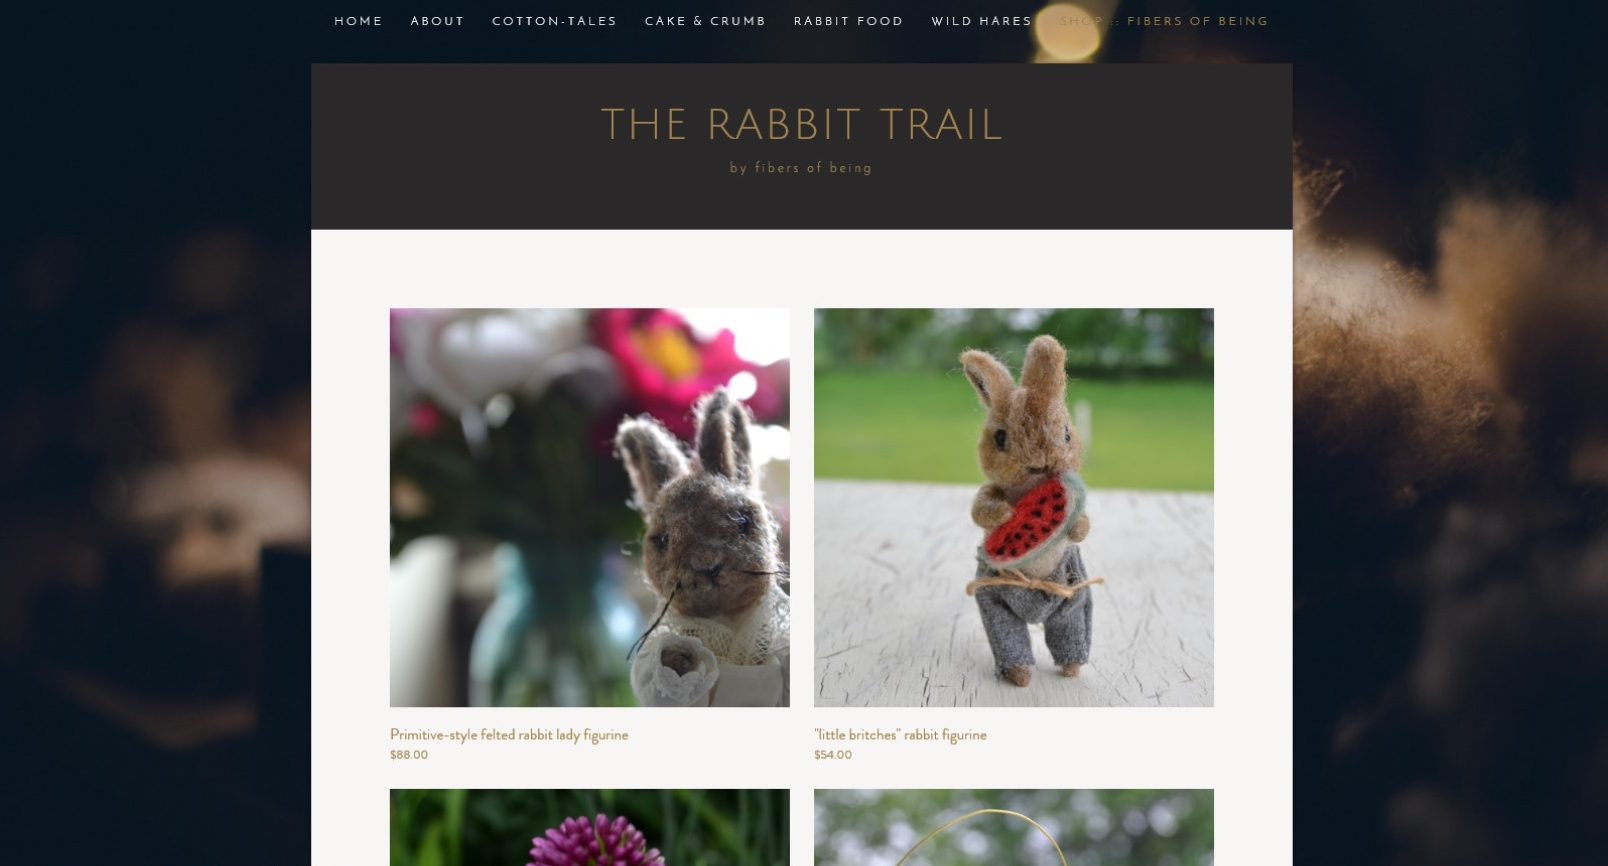 http://www.therabbittrail.com/shop/